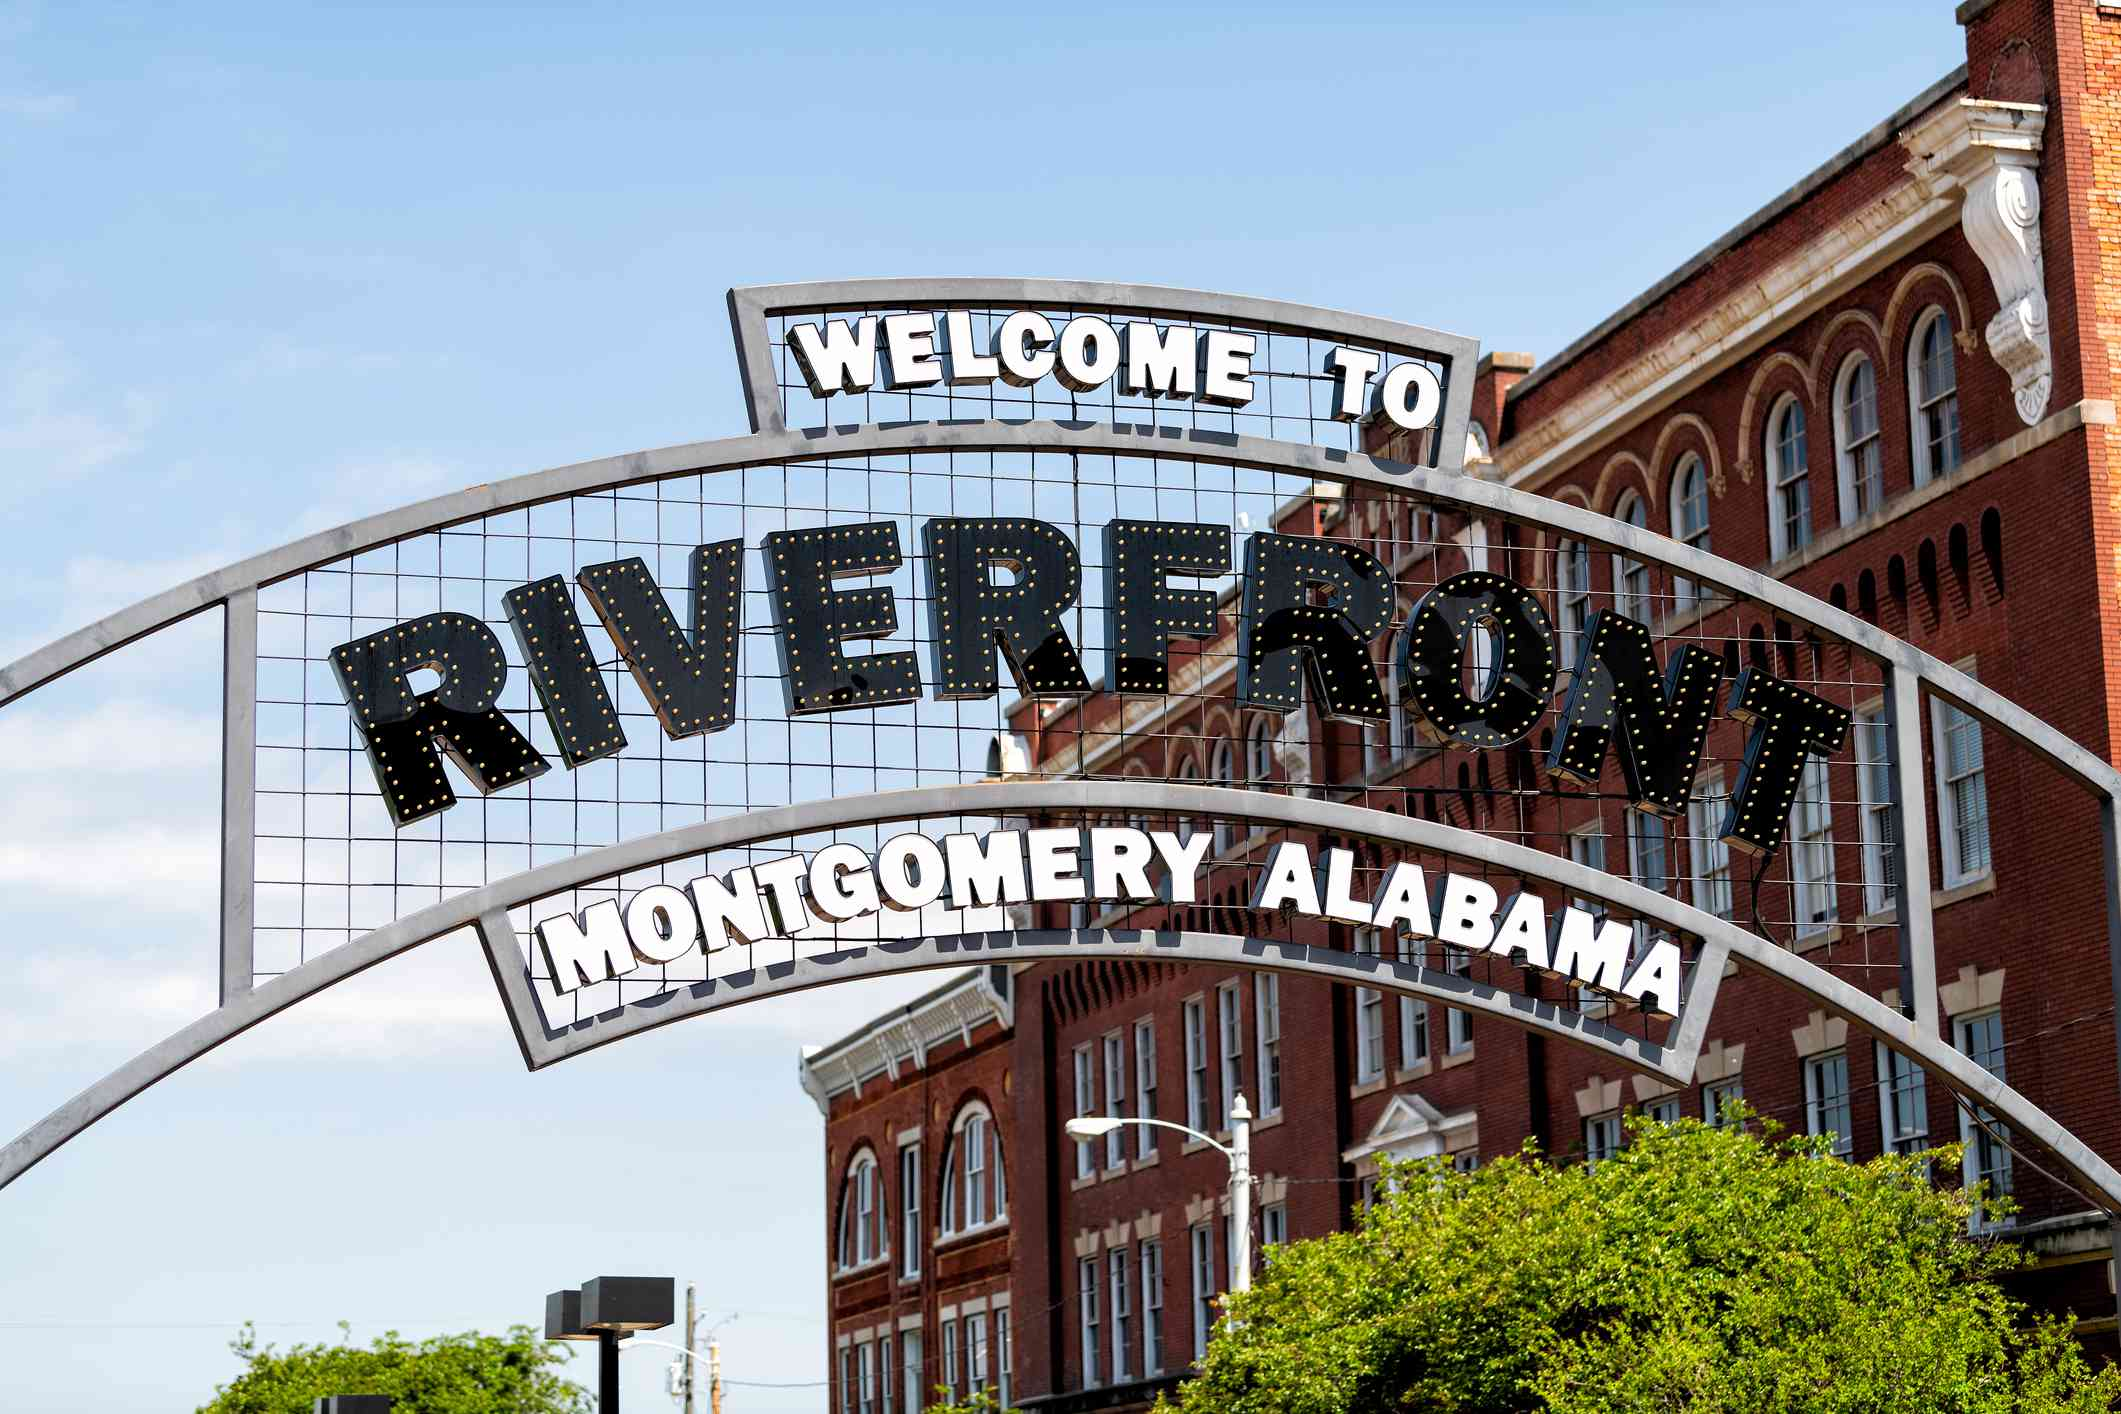 Welcome to Riverfront park illuminated sign with buildings in background in capital Alabama city of Montgomery in old town